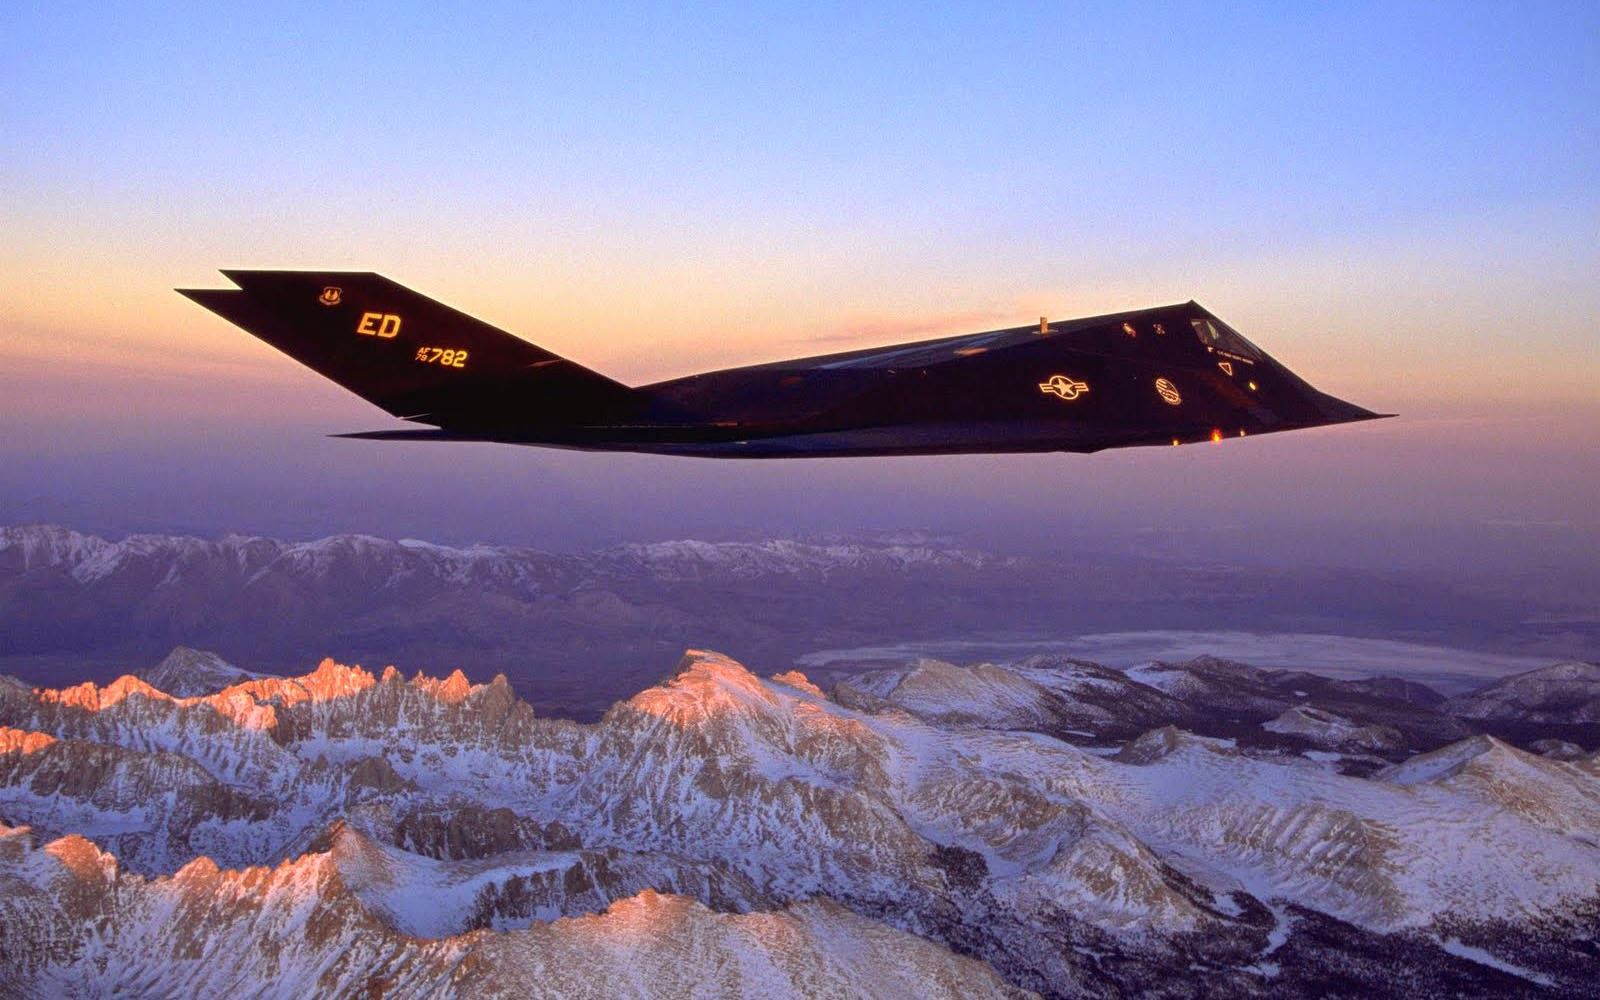 wallpapers: Lockheed F-117 Nighthawk Aircraft Wallpapers